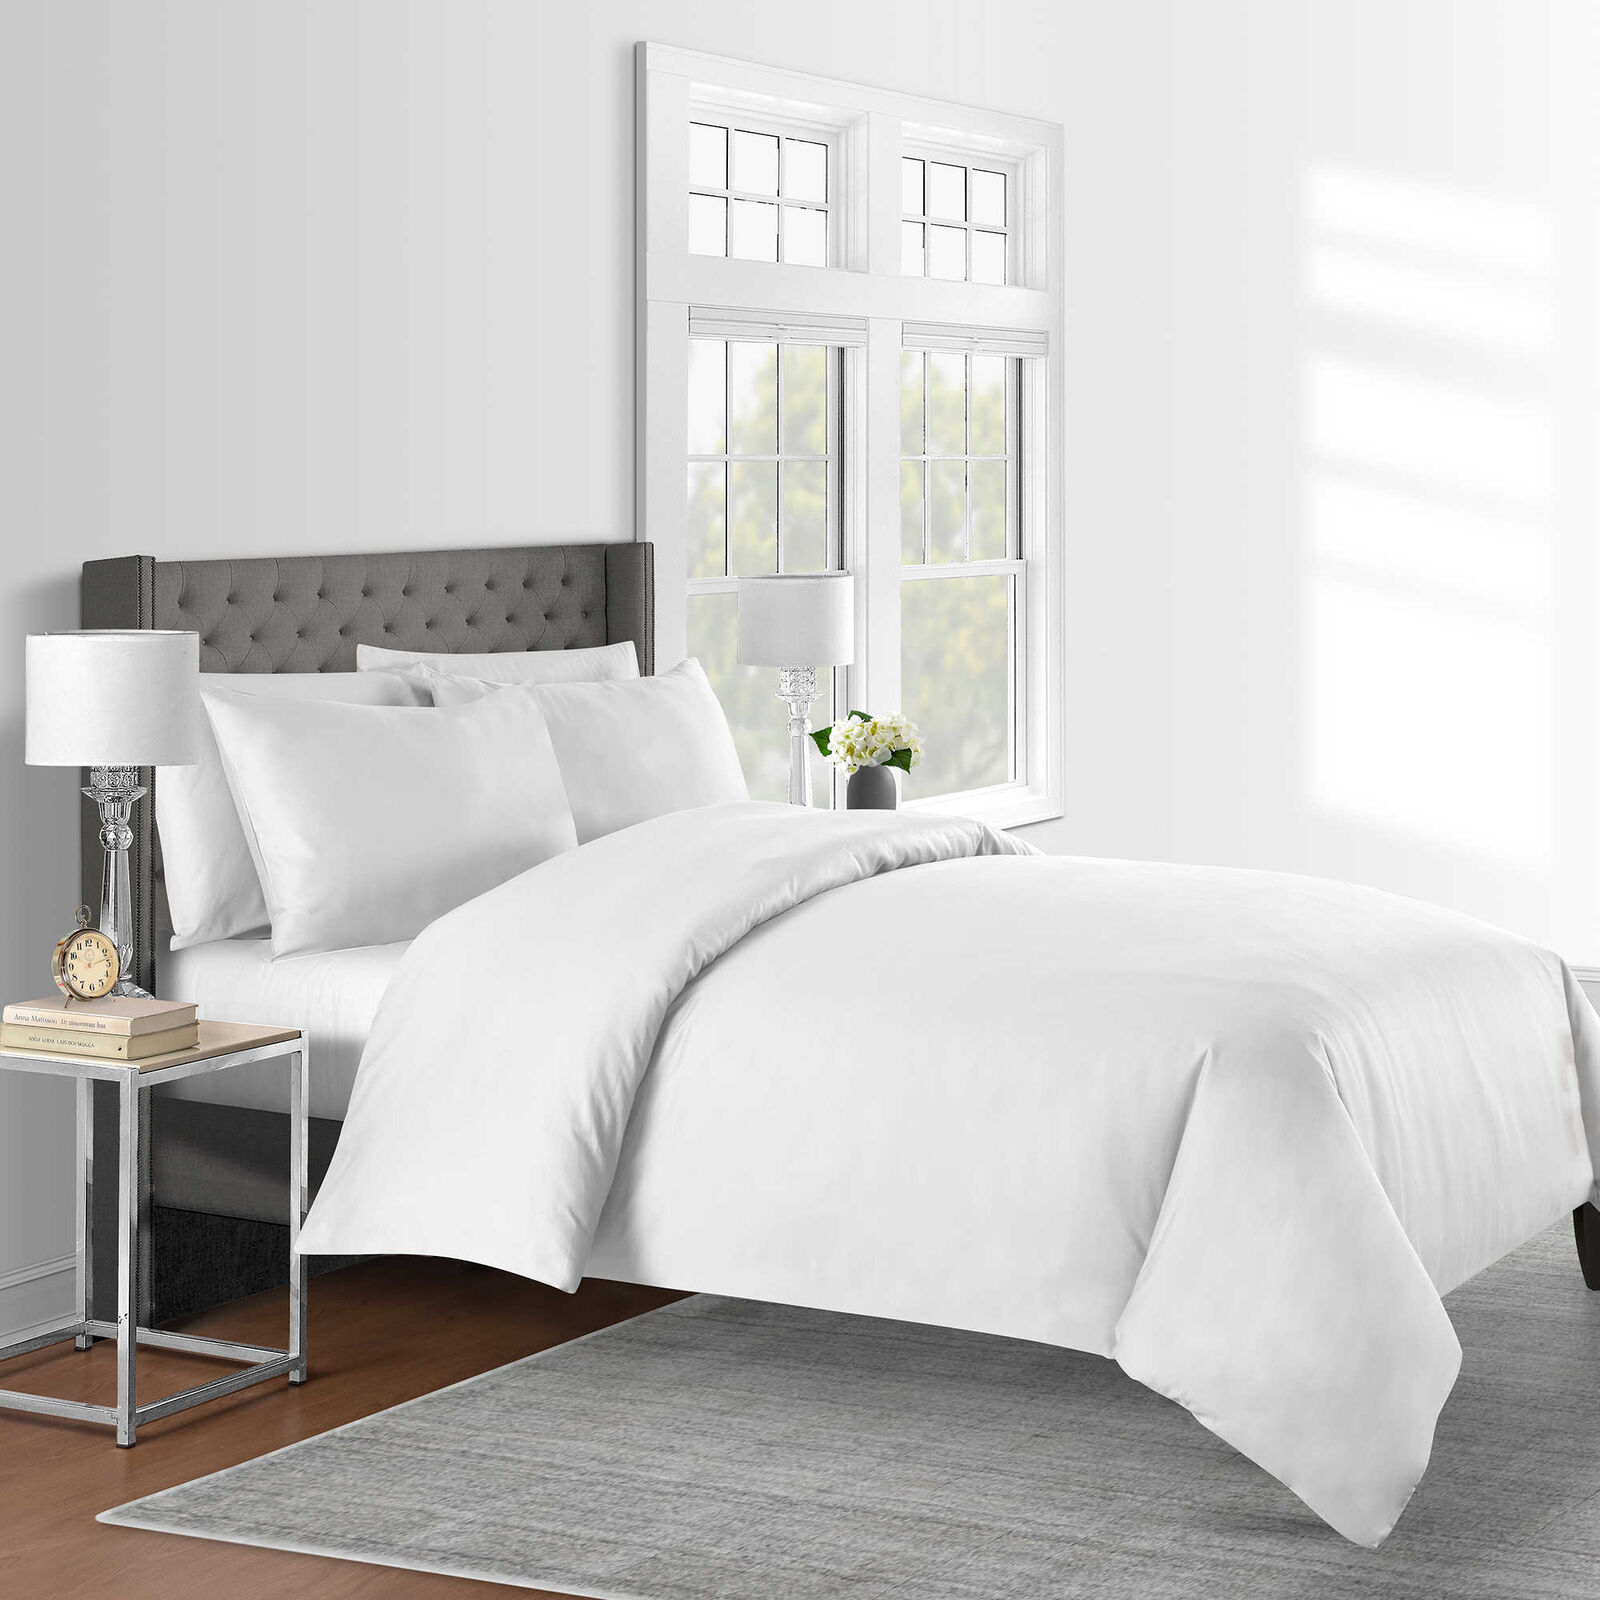 625 Thread Count Solid King Duvet Cover Set in White 3 Piece 100% Cotton